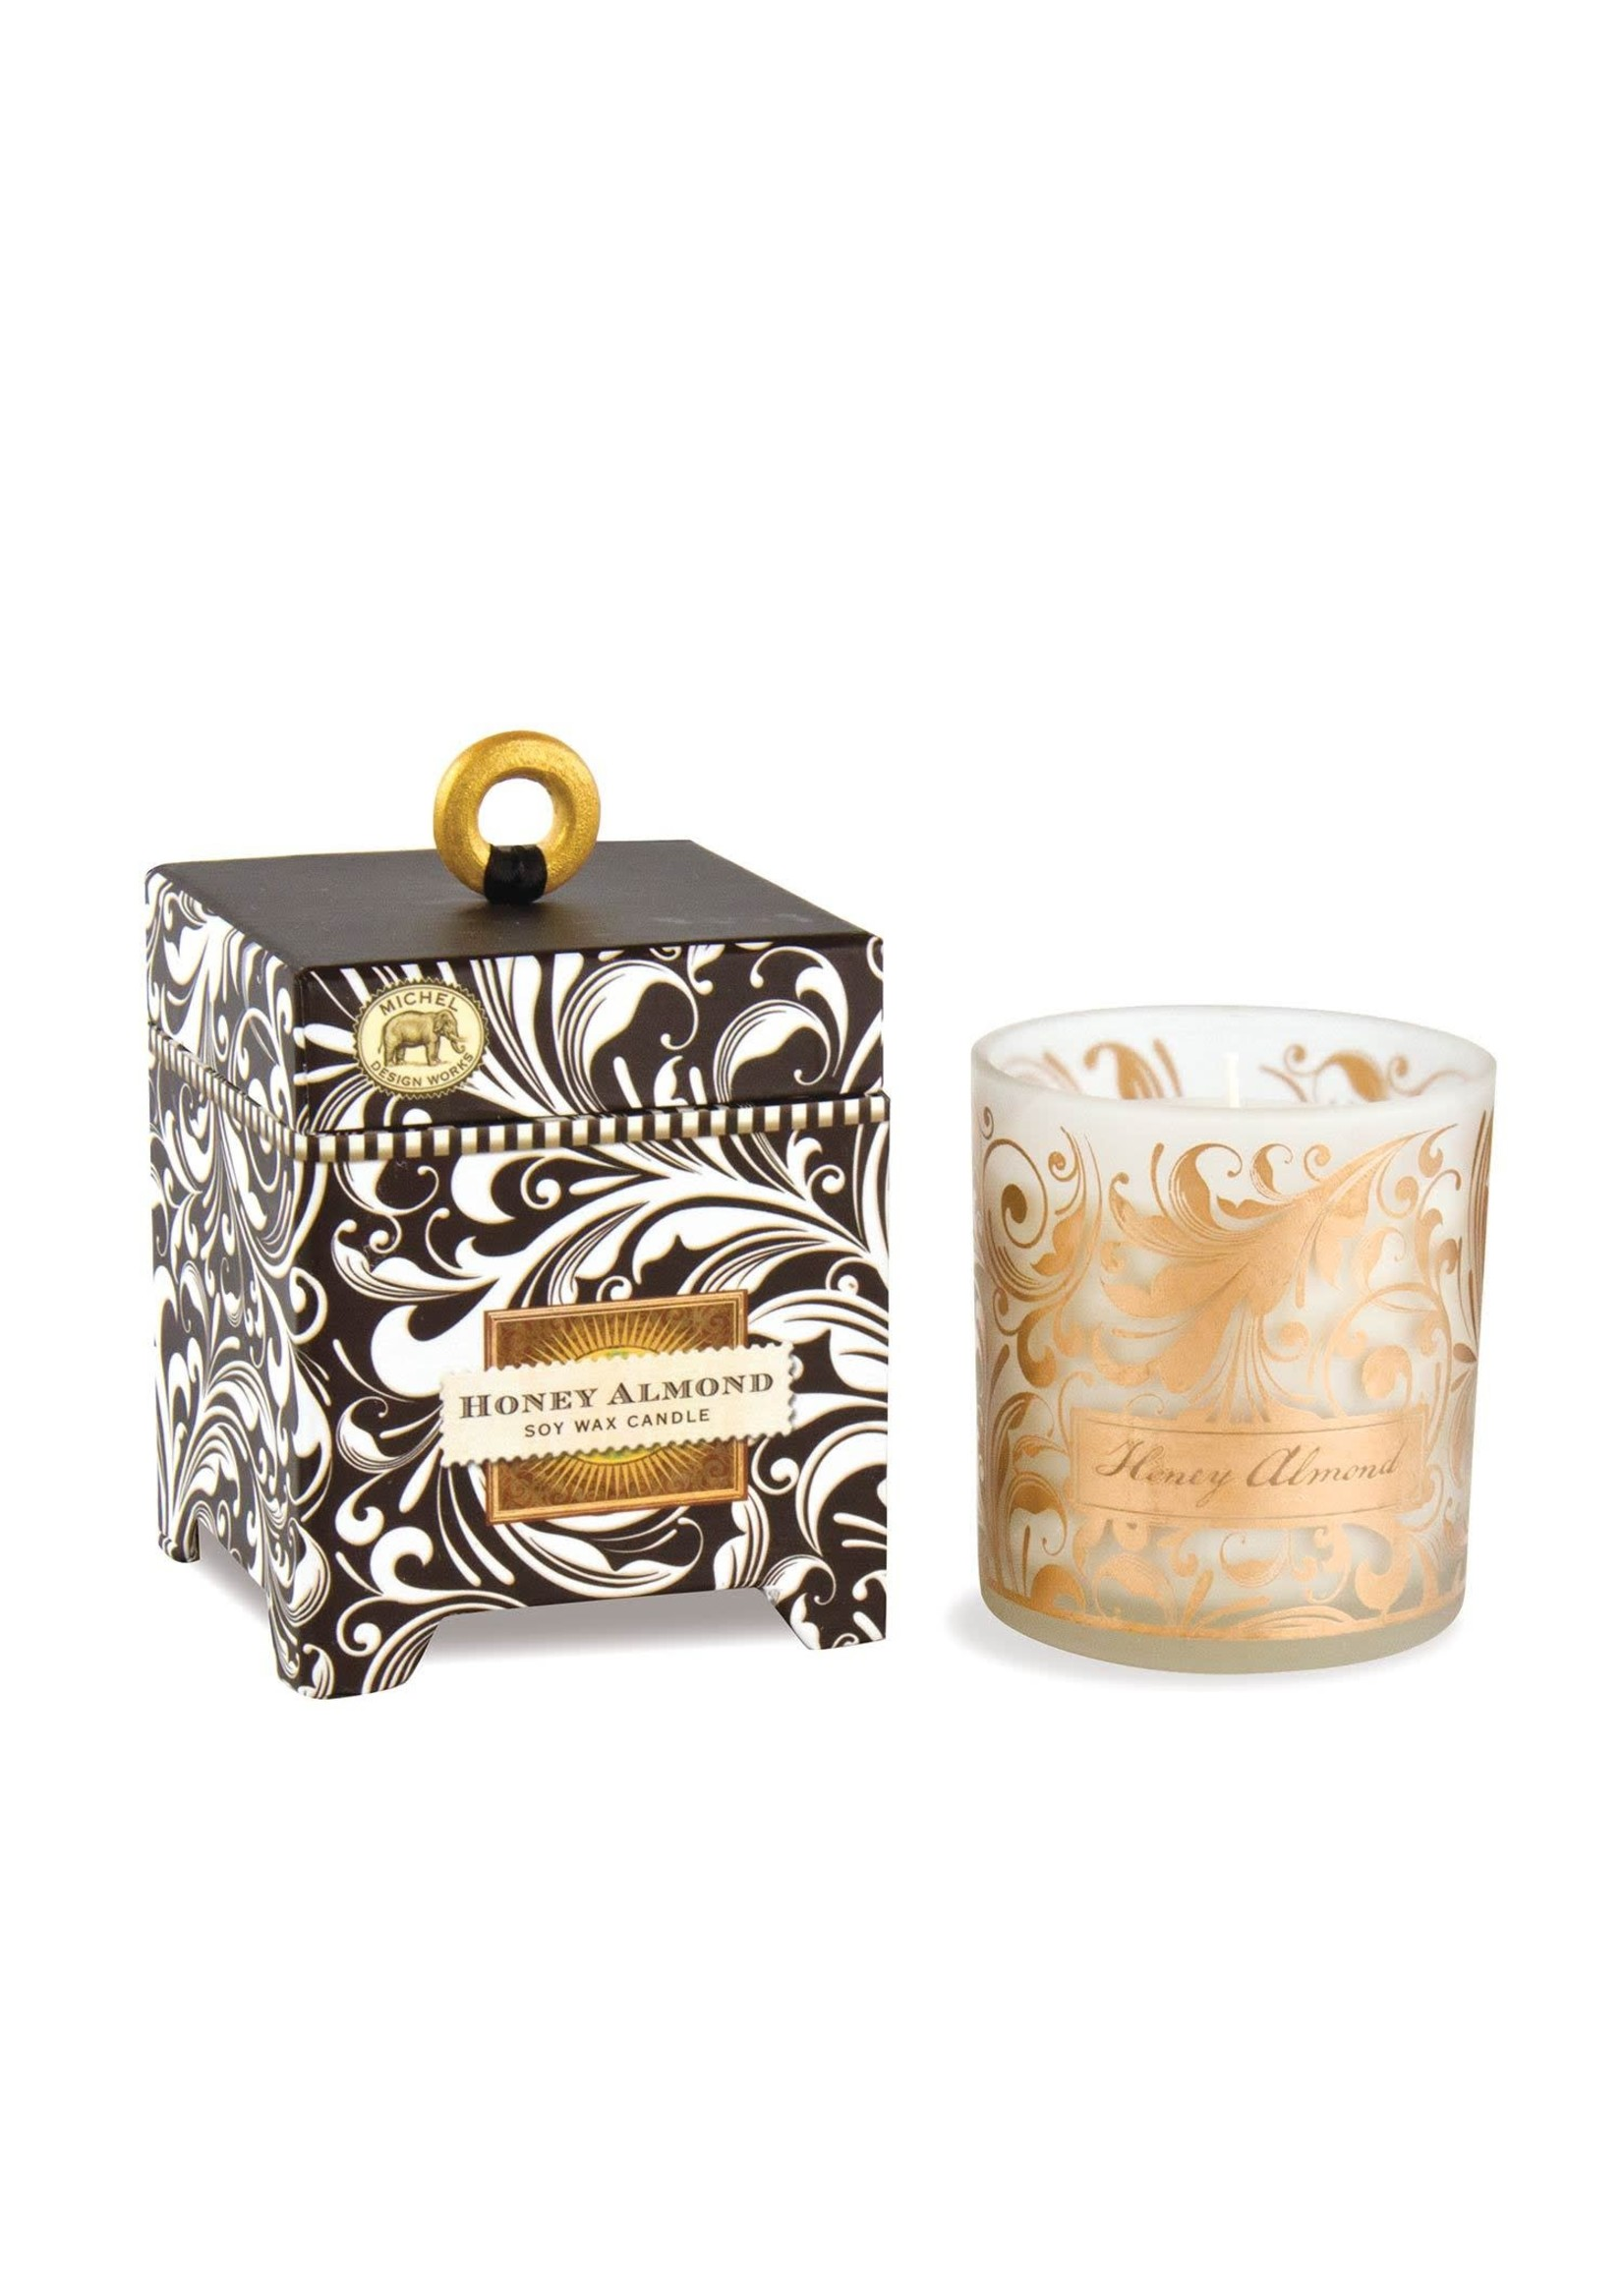 HONEY ALMOND SOY CANDLE